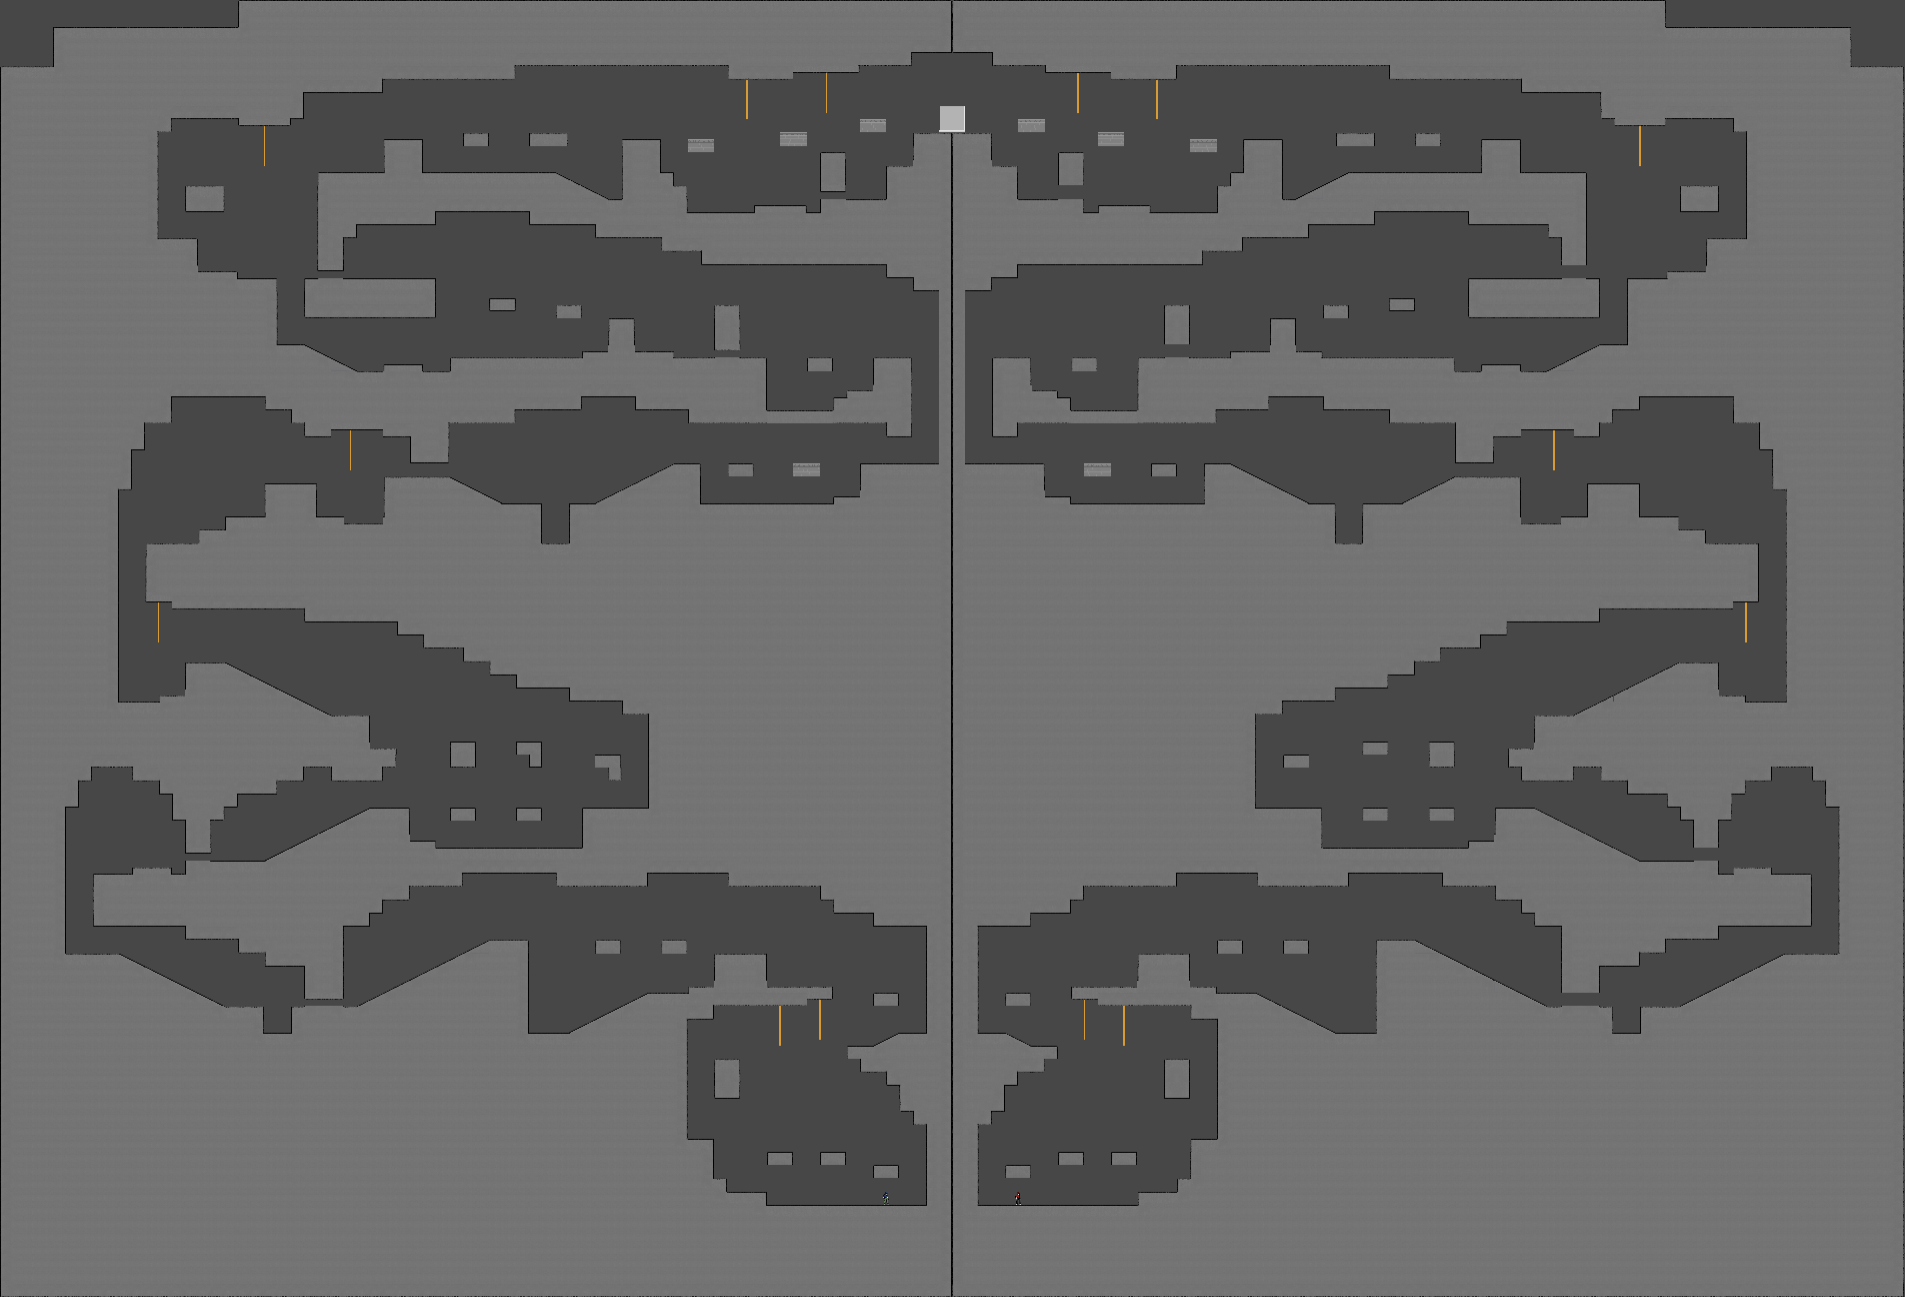 A preview of the level layout